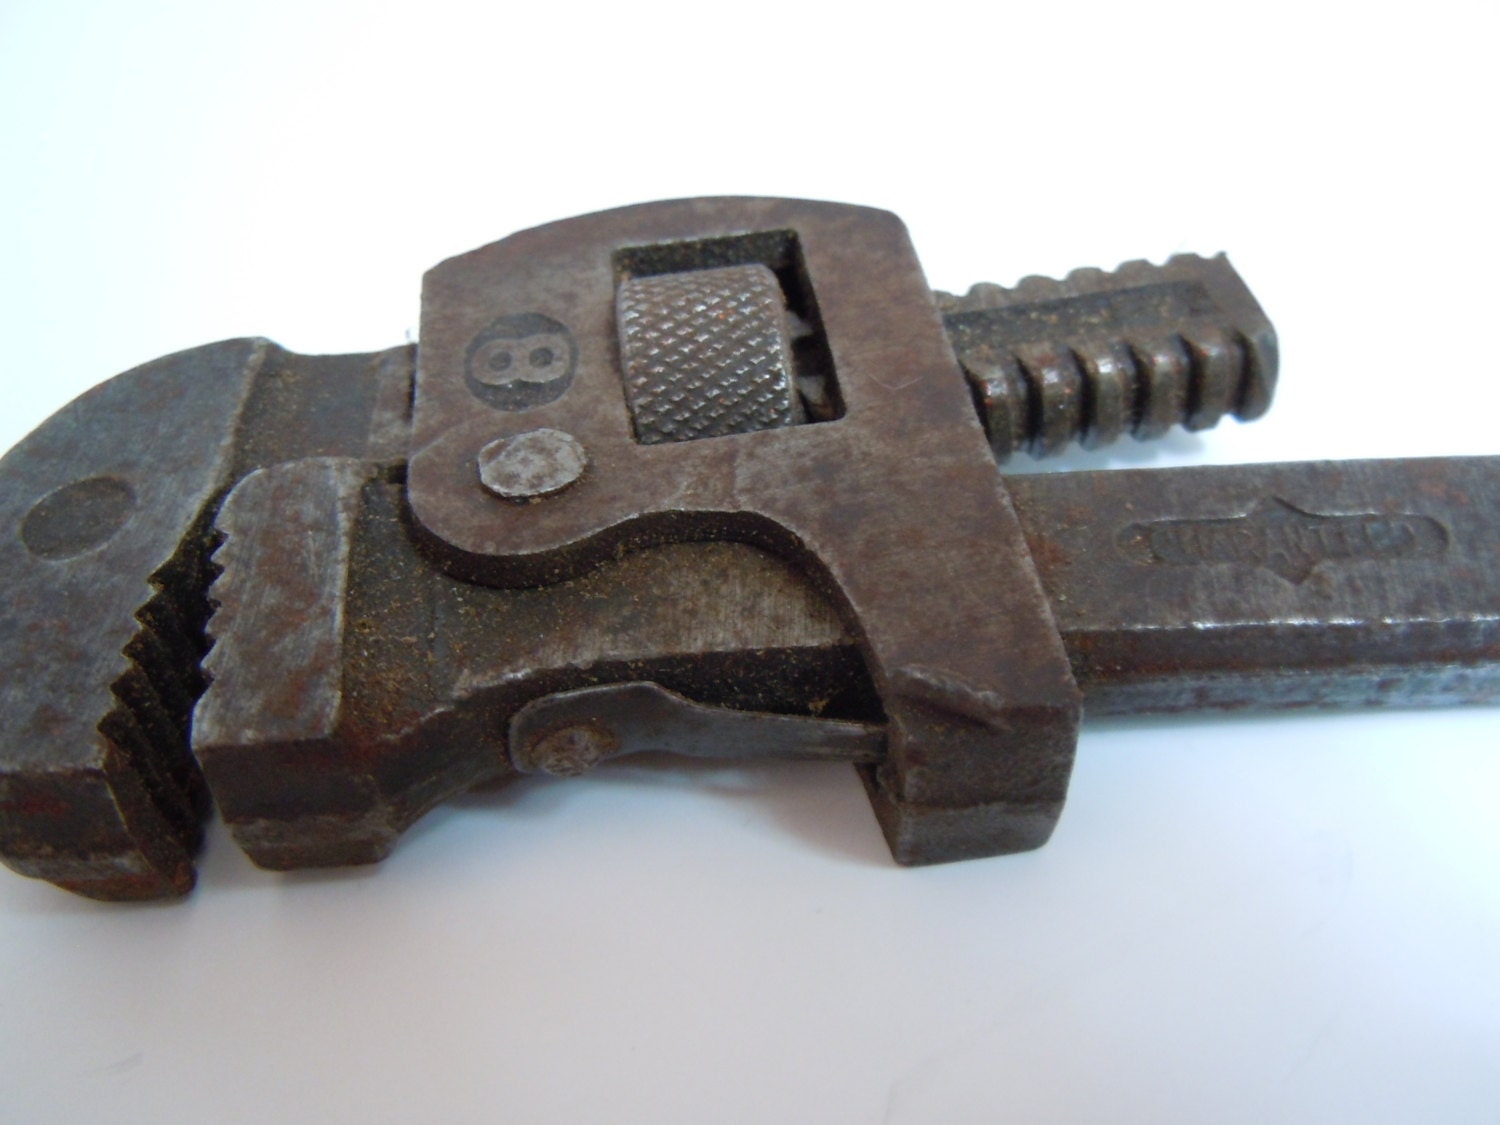 Antique Plumbers 8″ Pipe Wrench | Vintage Monkey Wrench 8 Inch ...